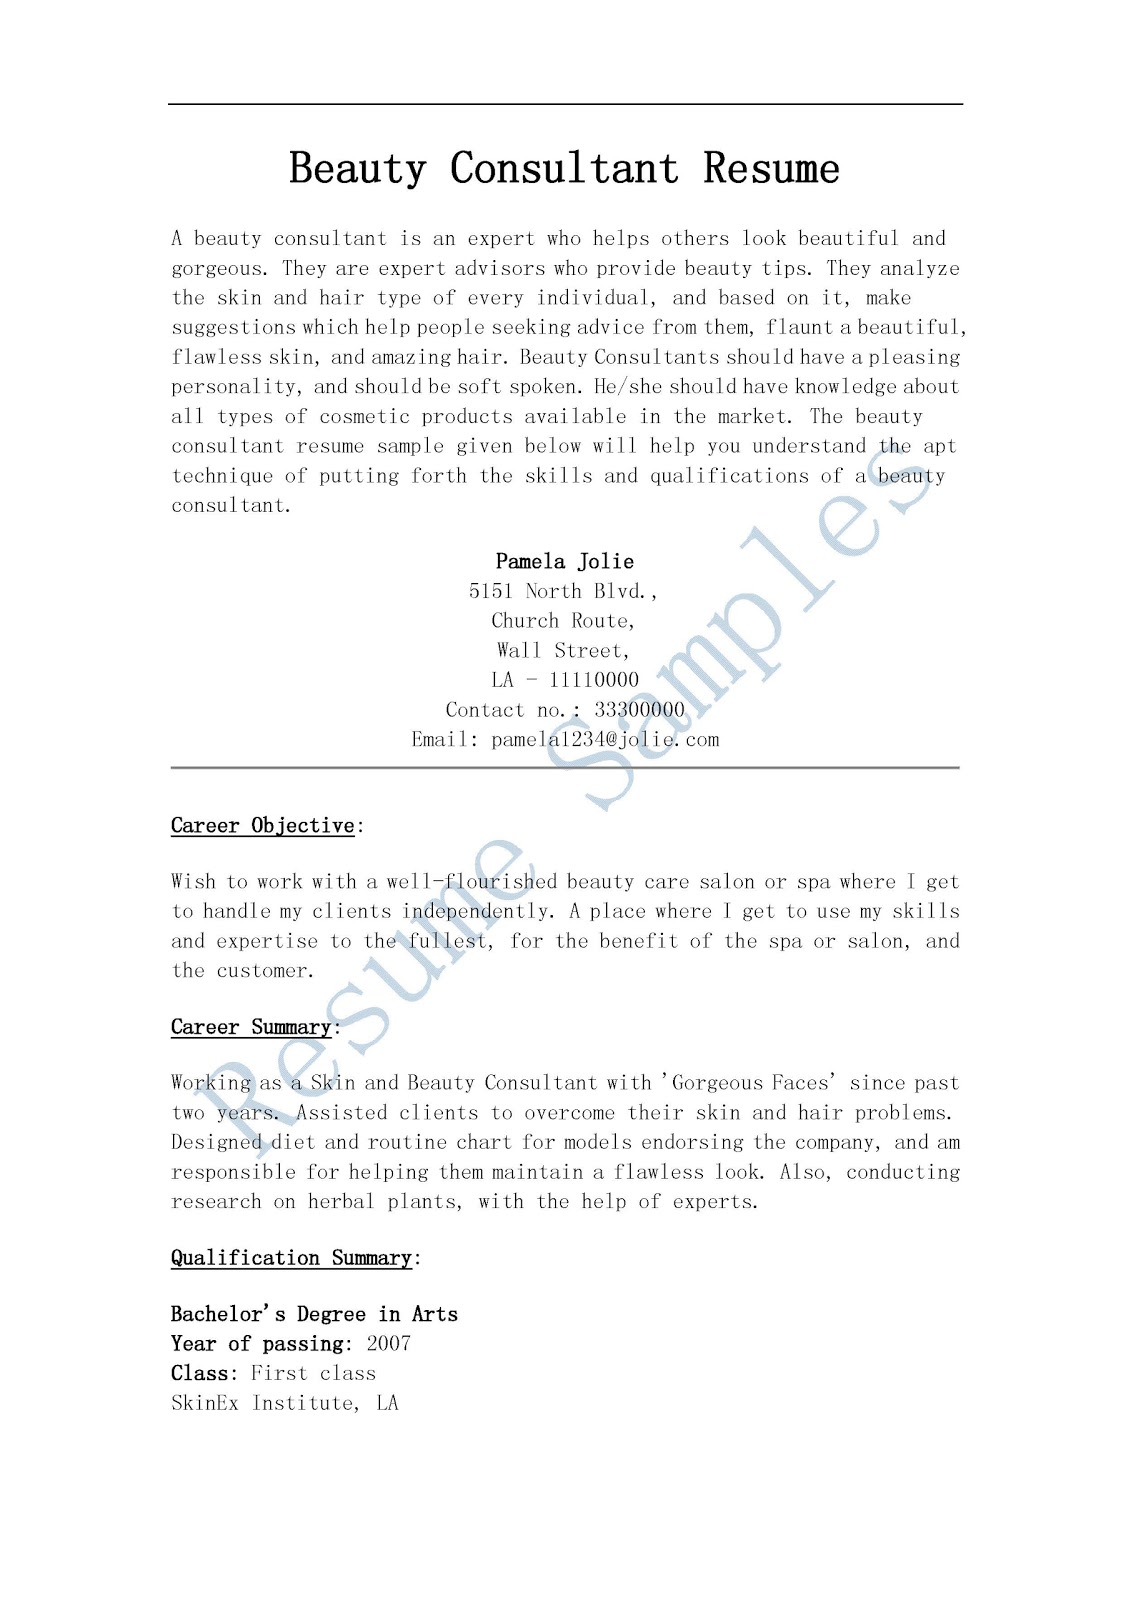 resume samples beauty consultant resume resume sample cosmetology  also resume samples beauty consultant resume